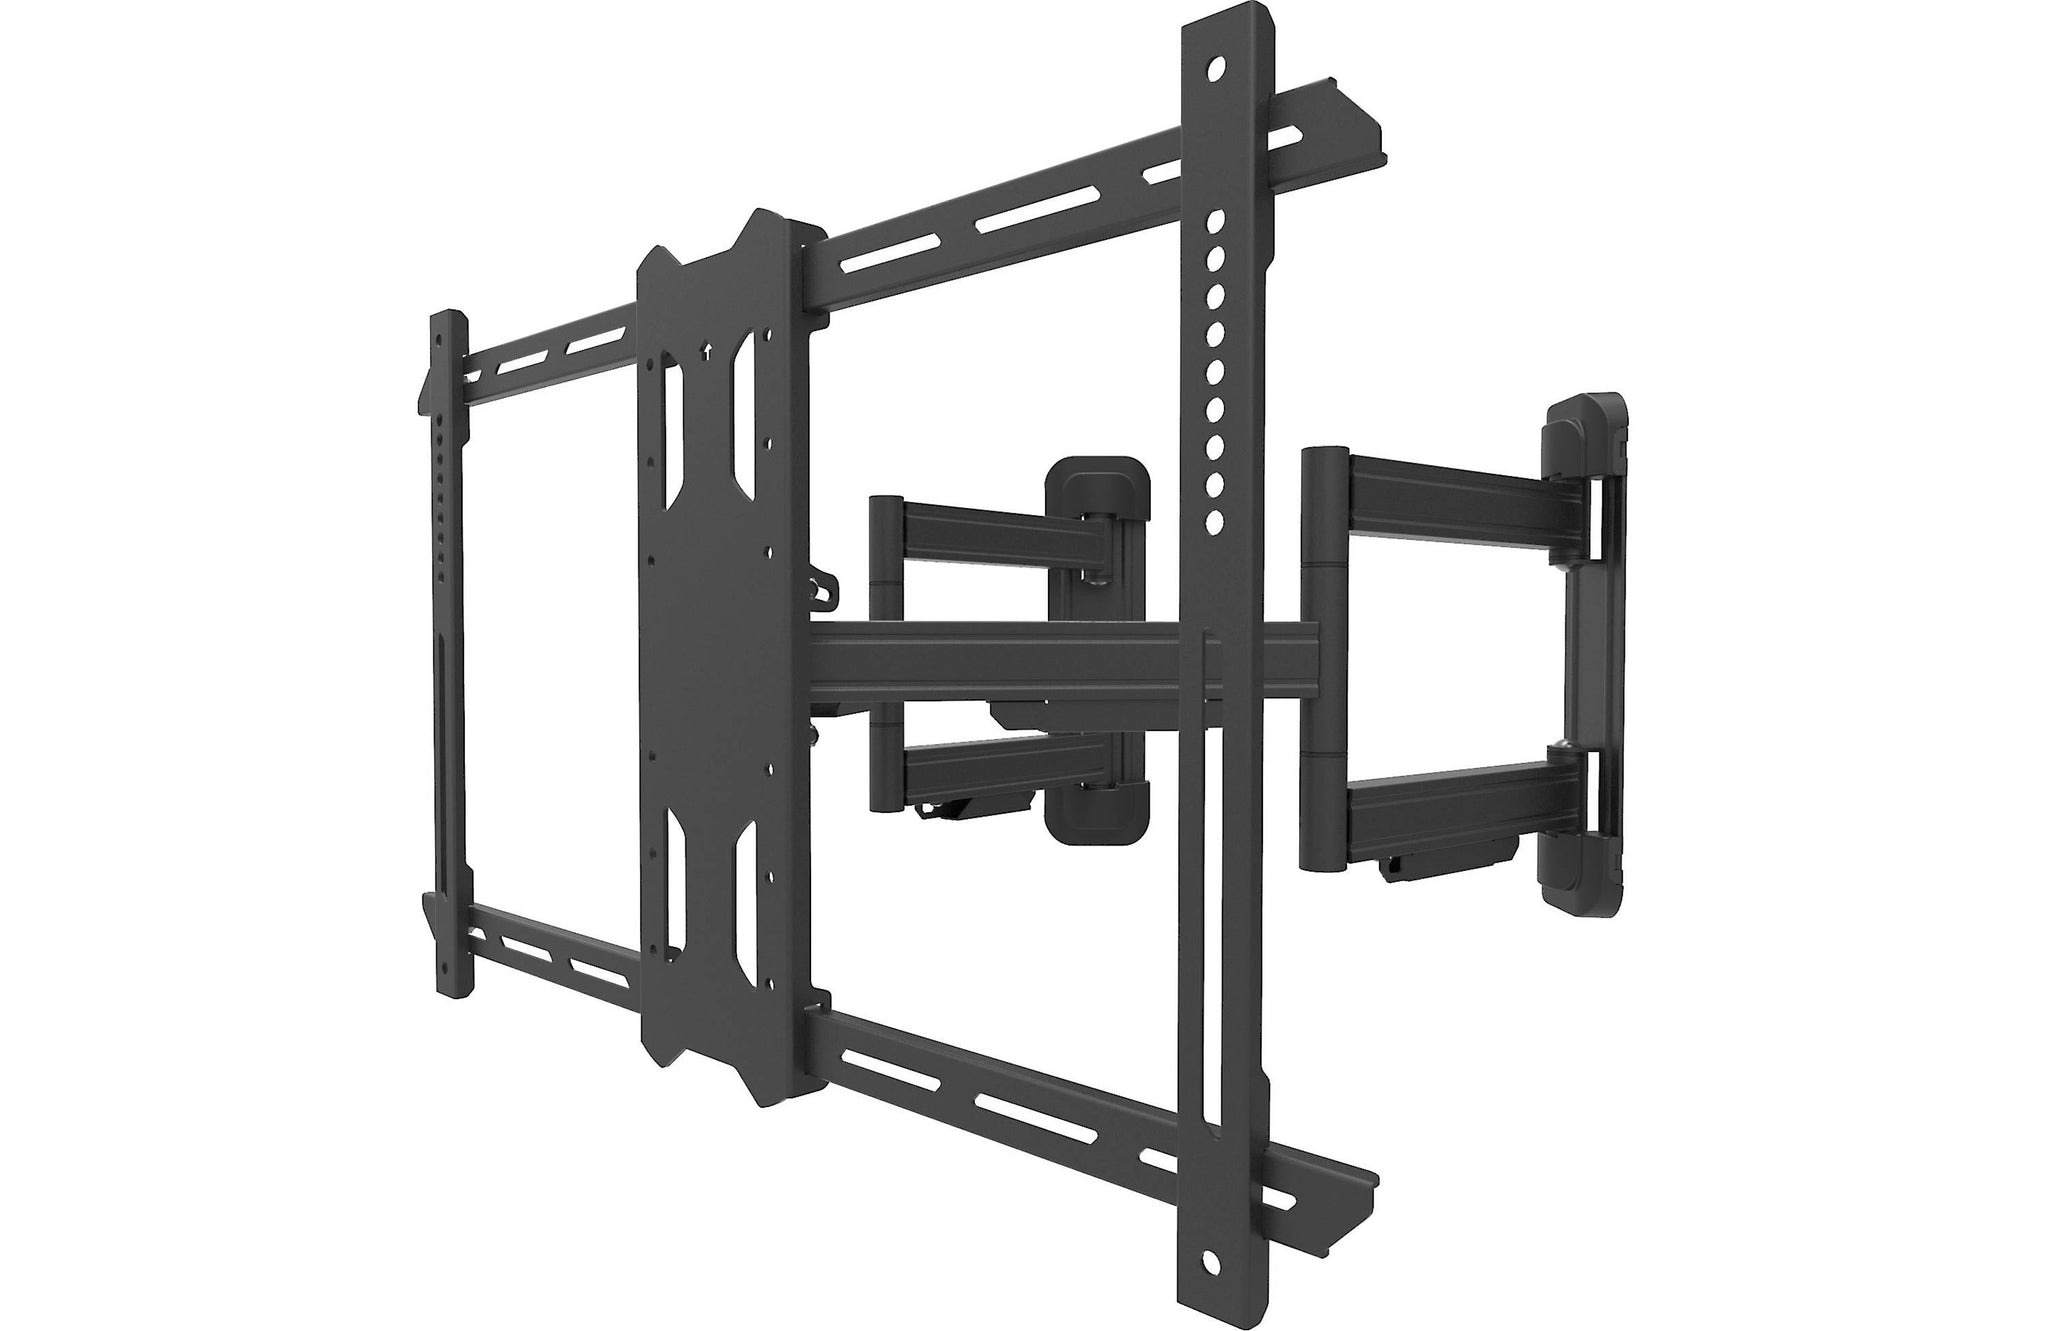 Kanto PDC650 Full Motion Corner TV Mount for 37 In to 70 In TVs